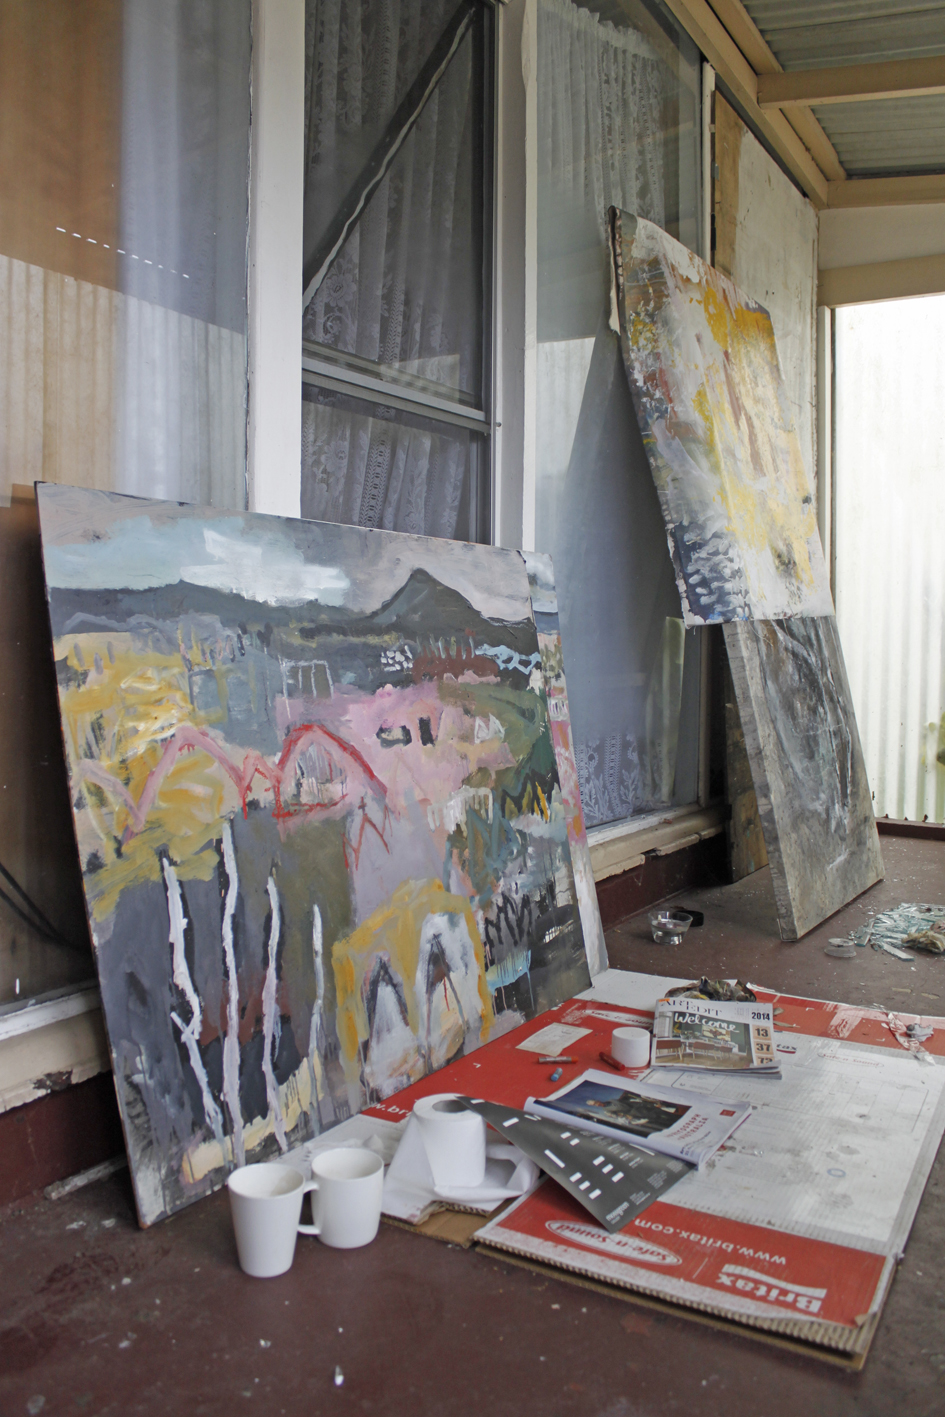 Australian Artist Studio Visit - James Kearns, The Corner Store Gallery, Orange NSW, photograph by Madeline Young